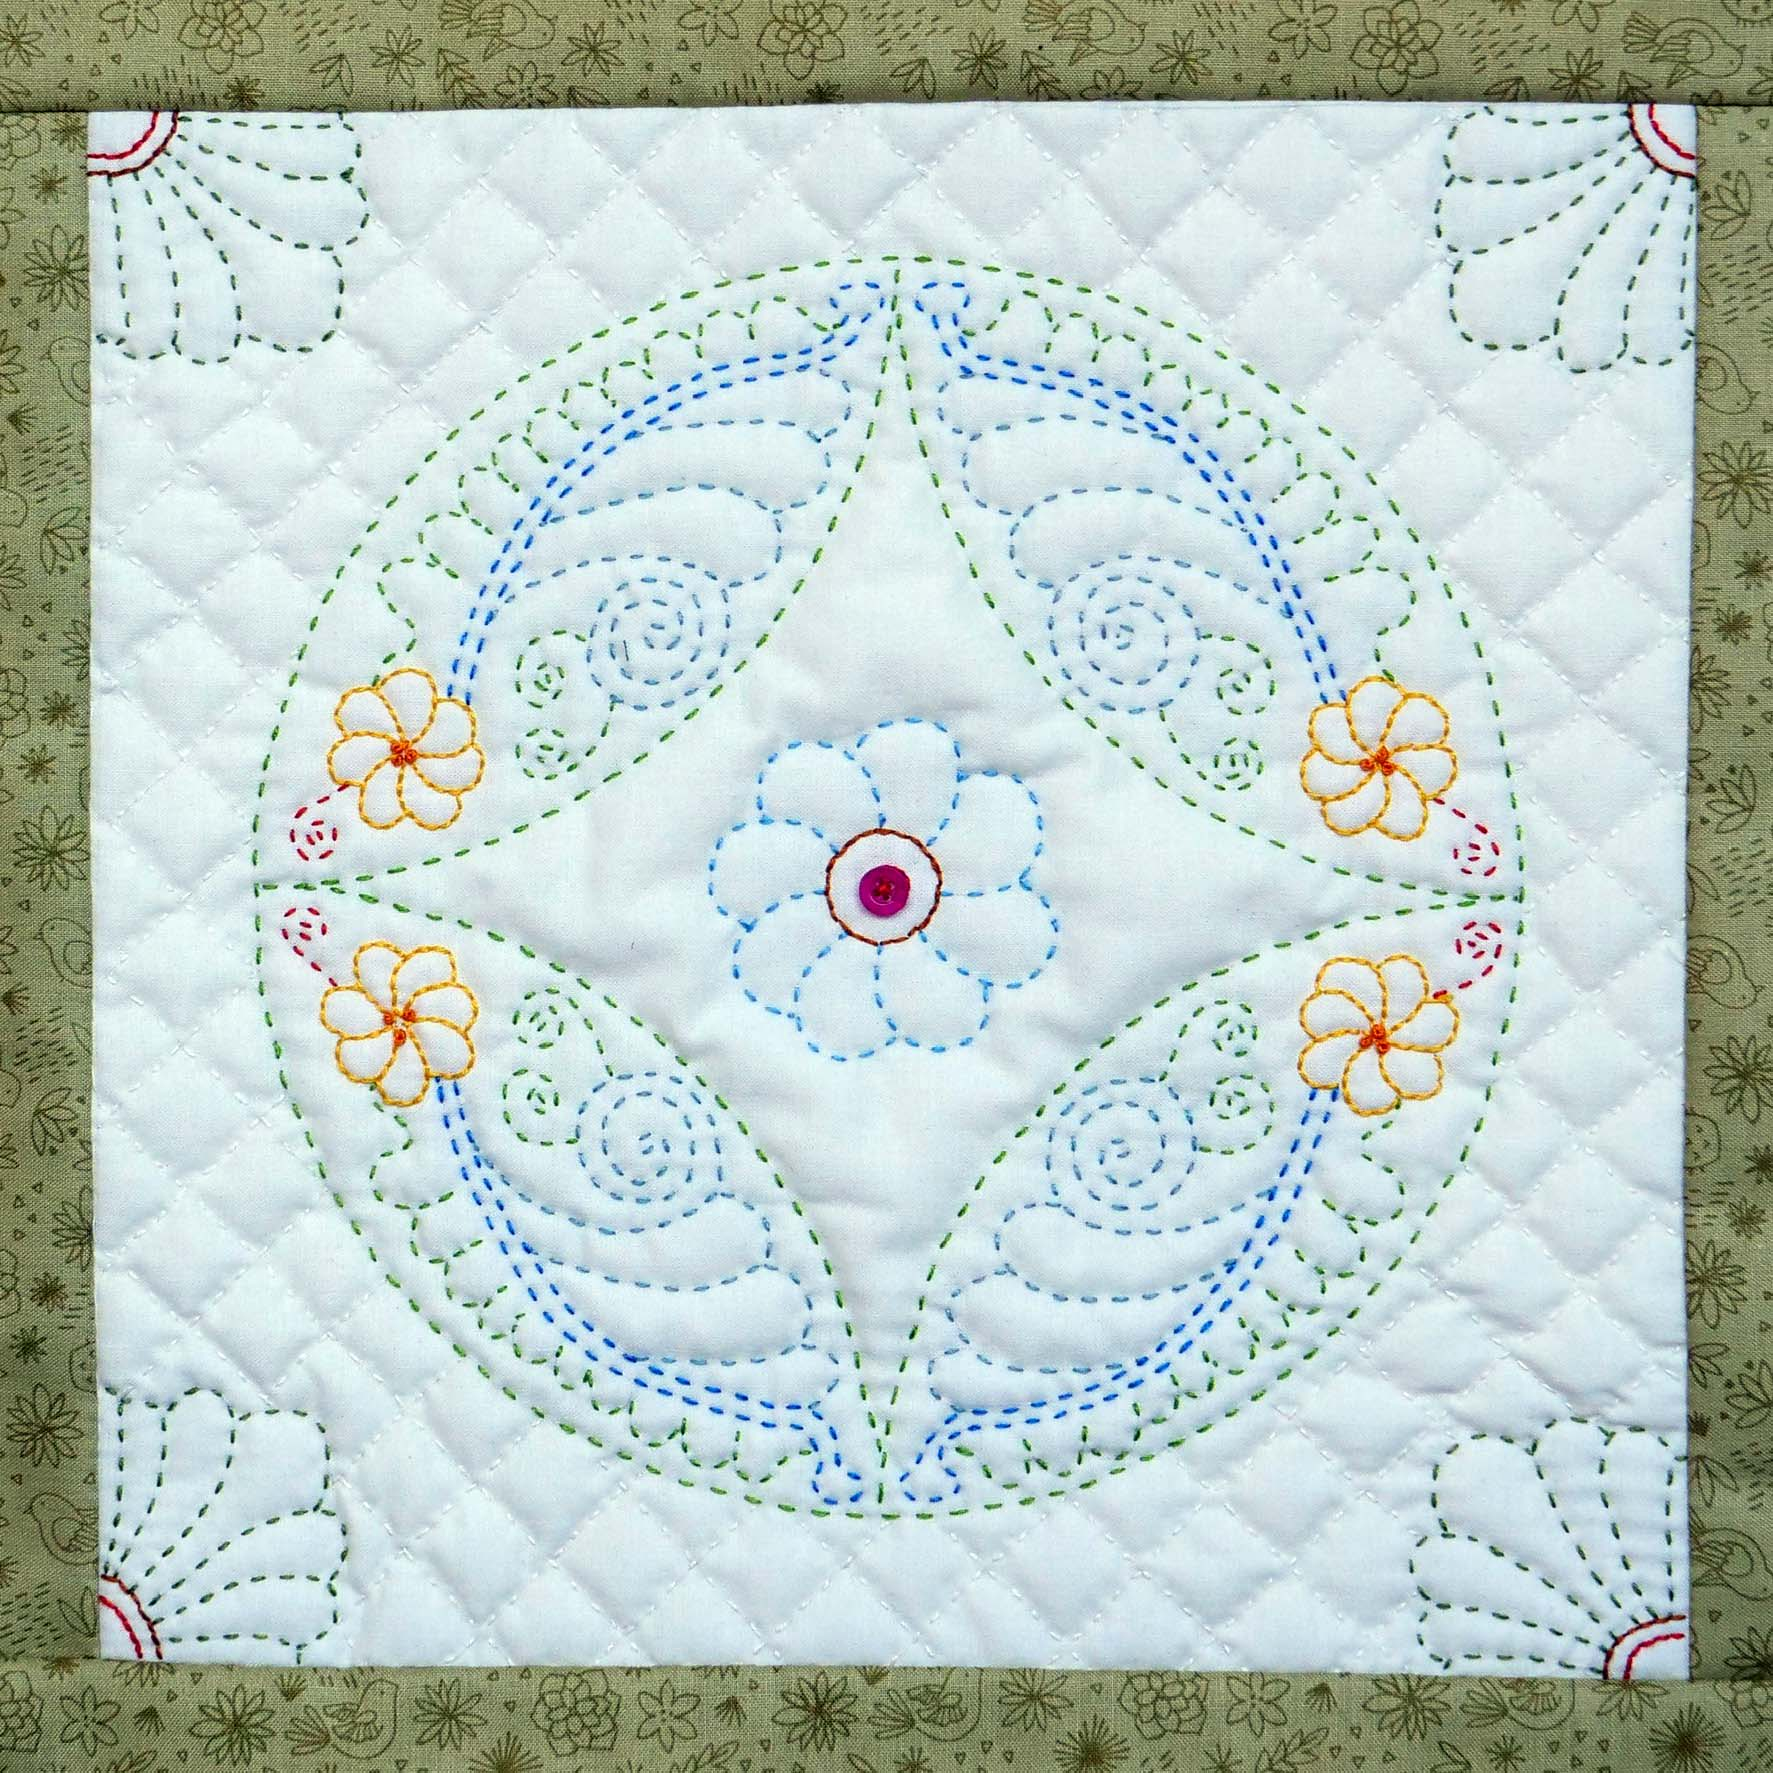 quilting by Helen Barnes